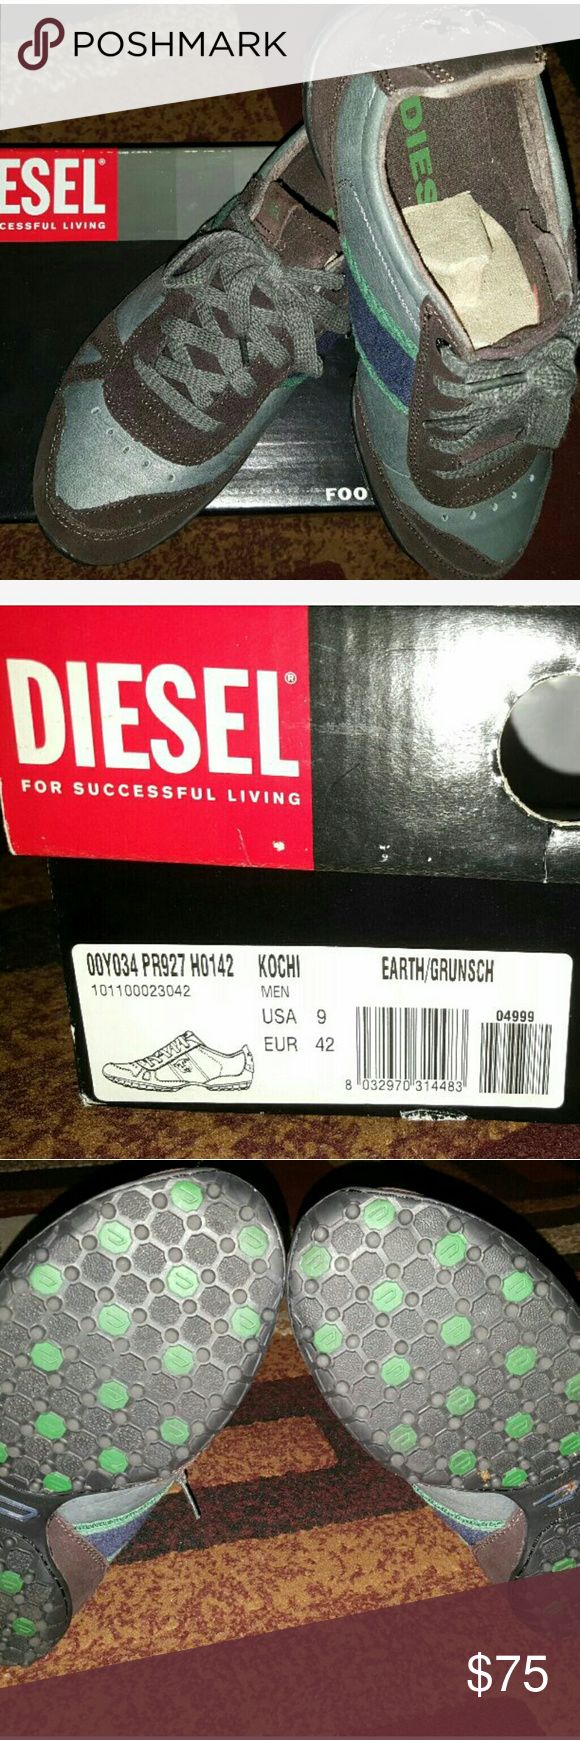 Men's Diesel Shoes Size 9 Diesel Shoes (used once) Model type: Kochi Size 9 Used once , still in good condition Box included Make me an offer Diesel Shoes Sneakers